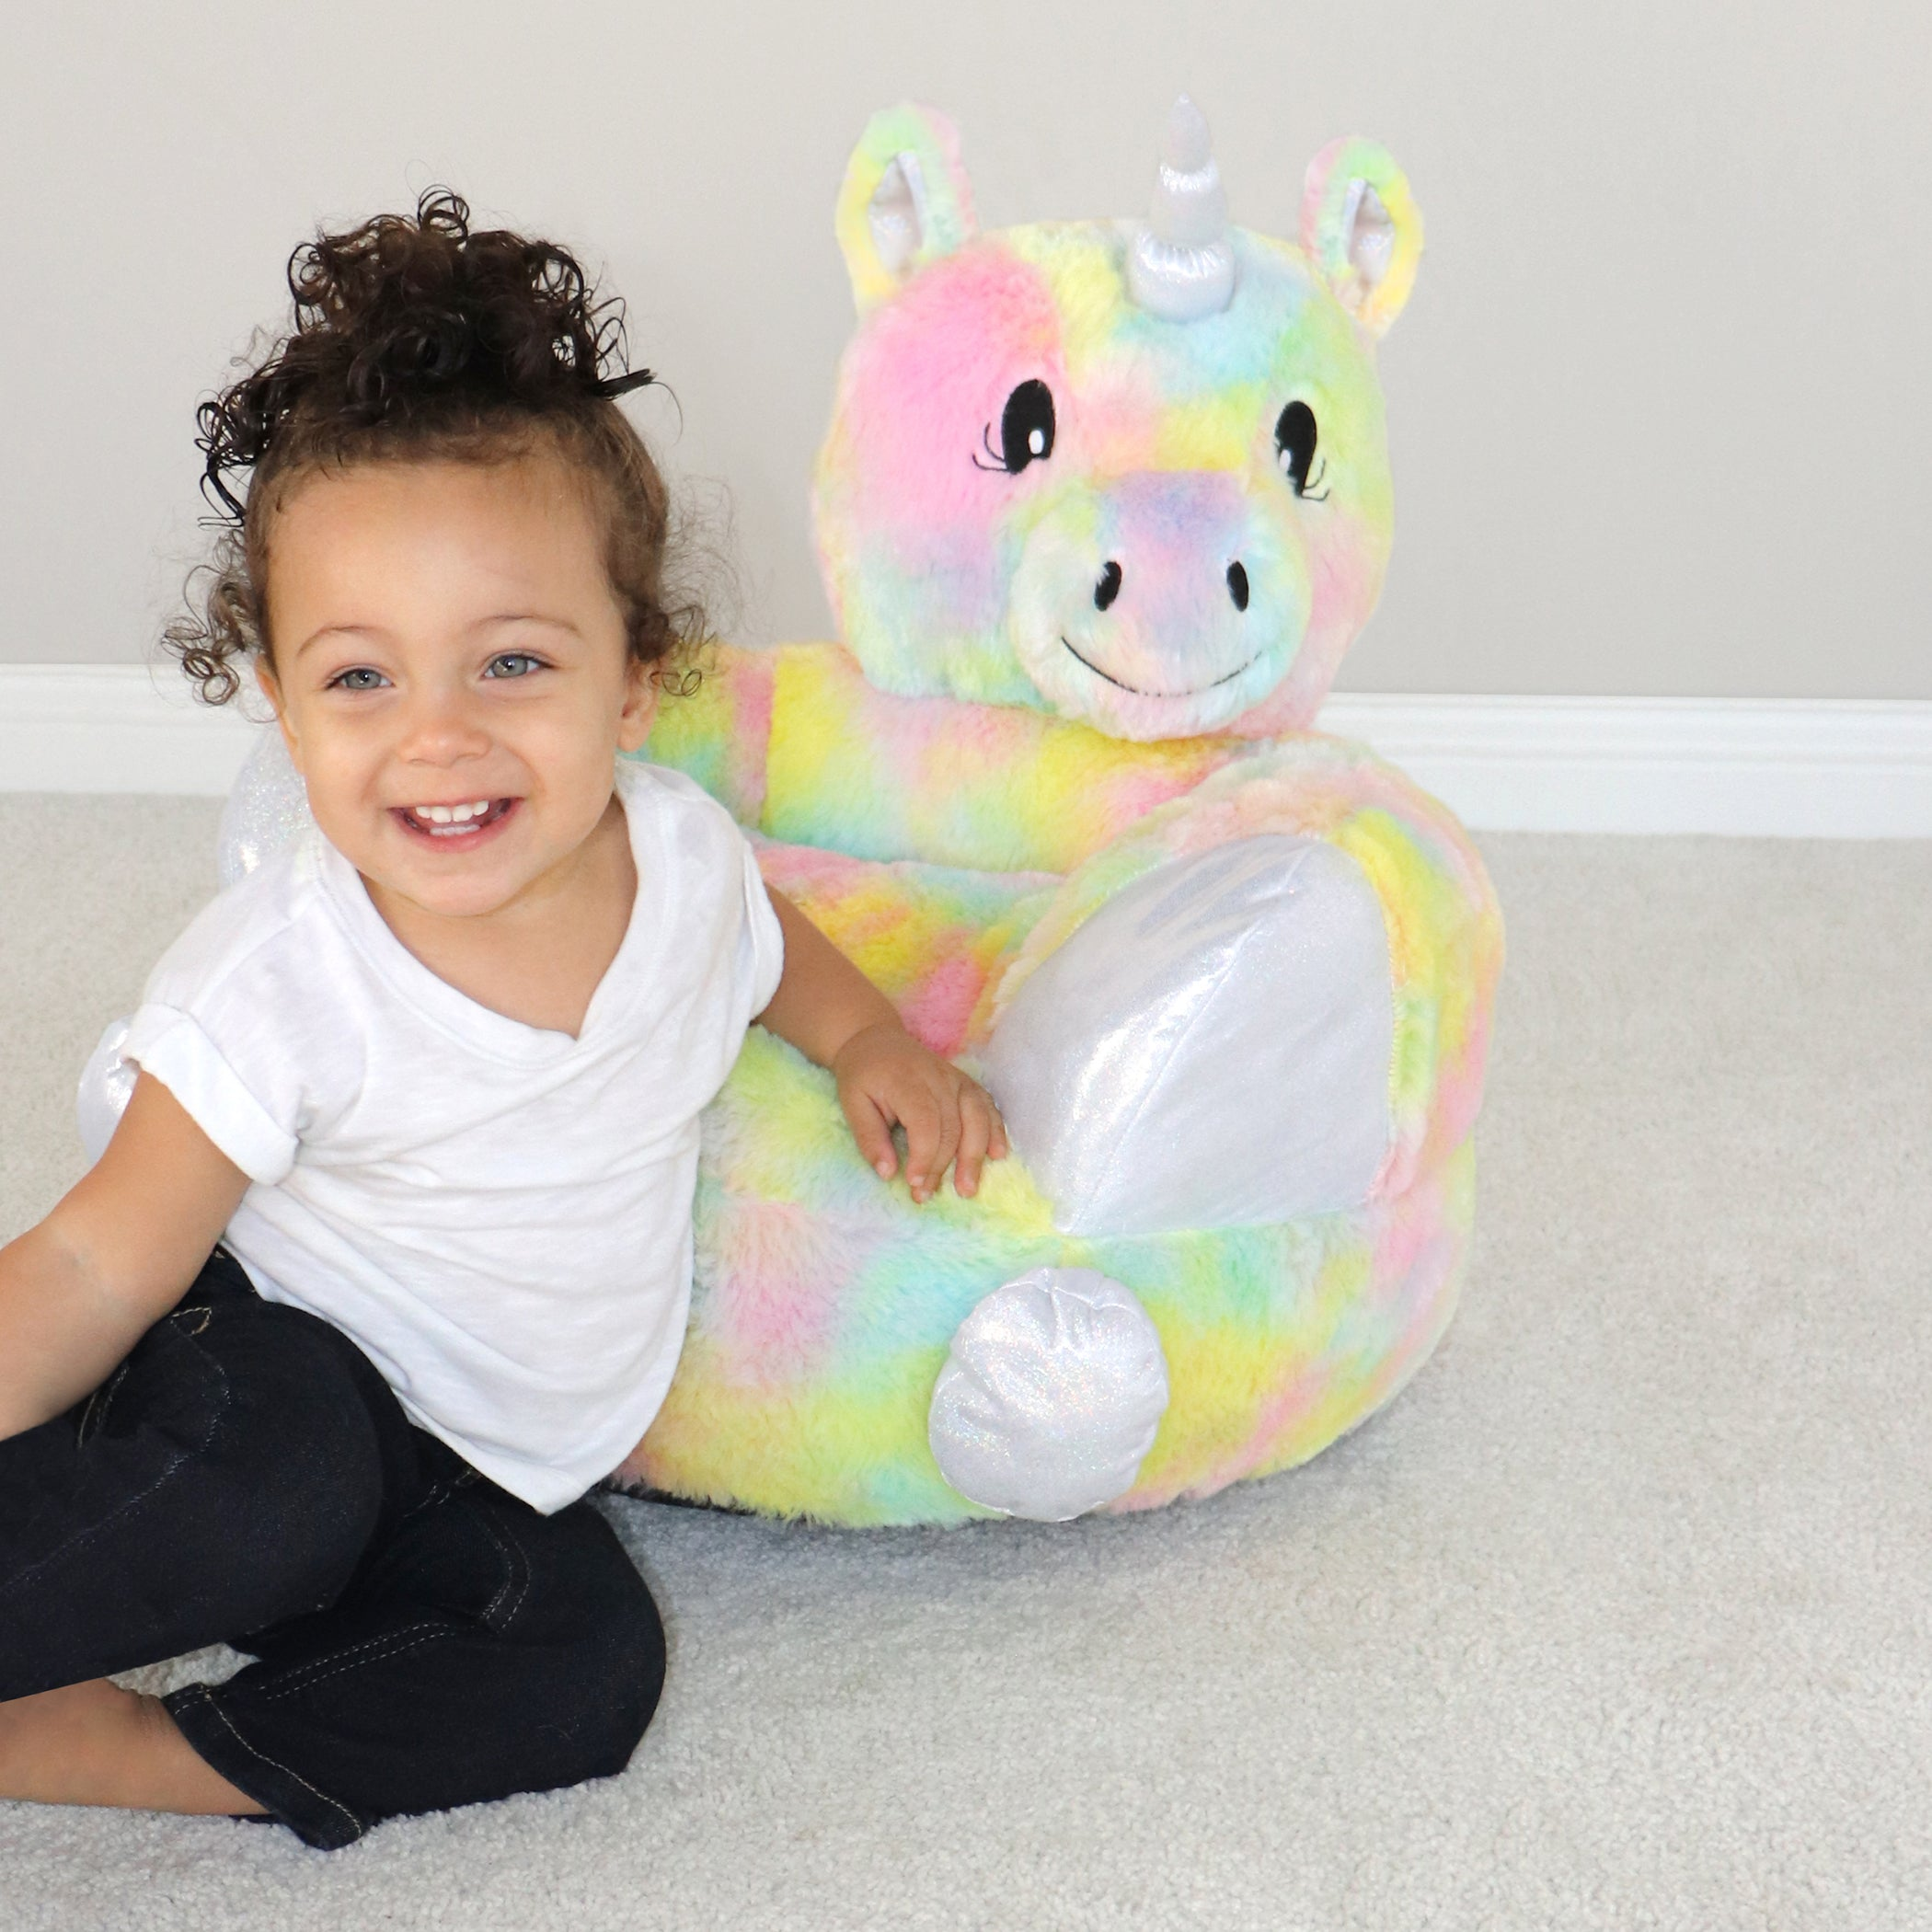 Stupendous Childrens Plush Rainbow Unicorn Character Chair Trend Lab Beatyapartments Chair Design Images Beatyapartmentscom